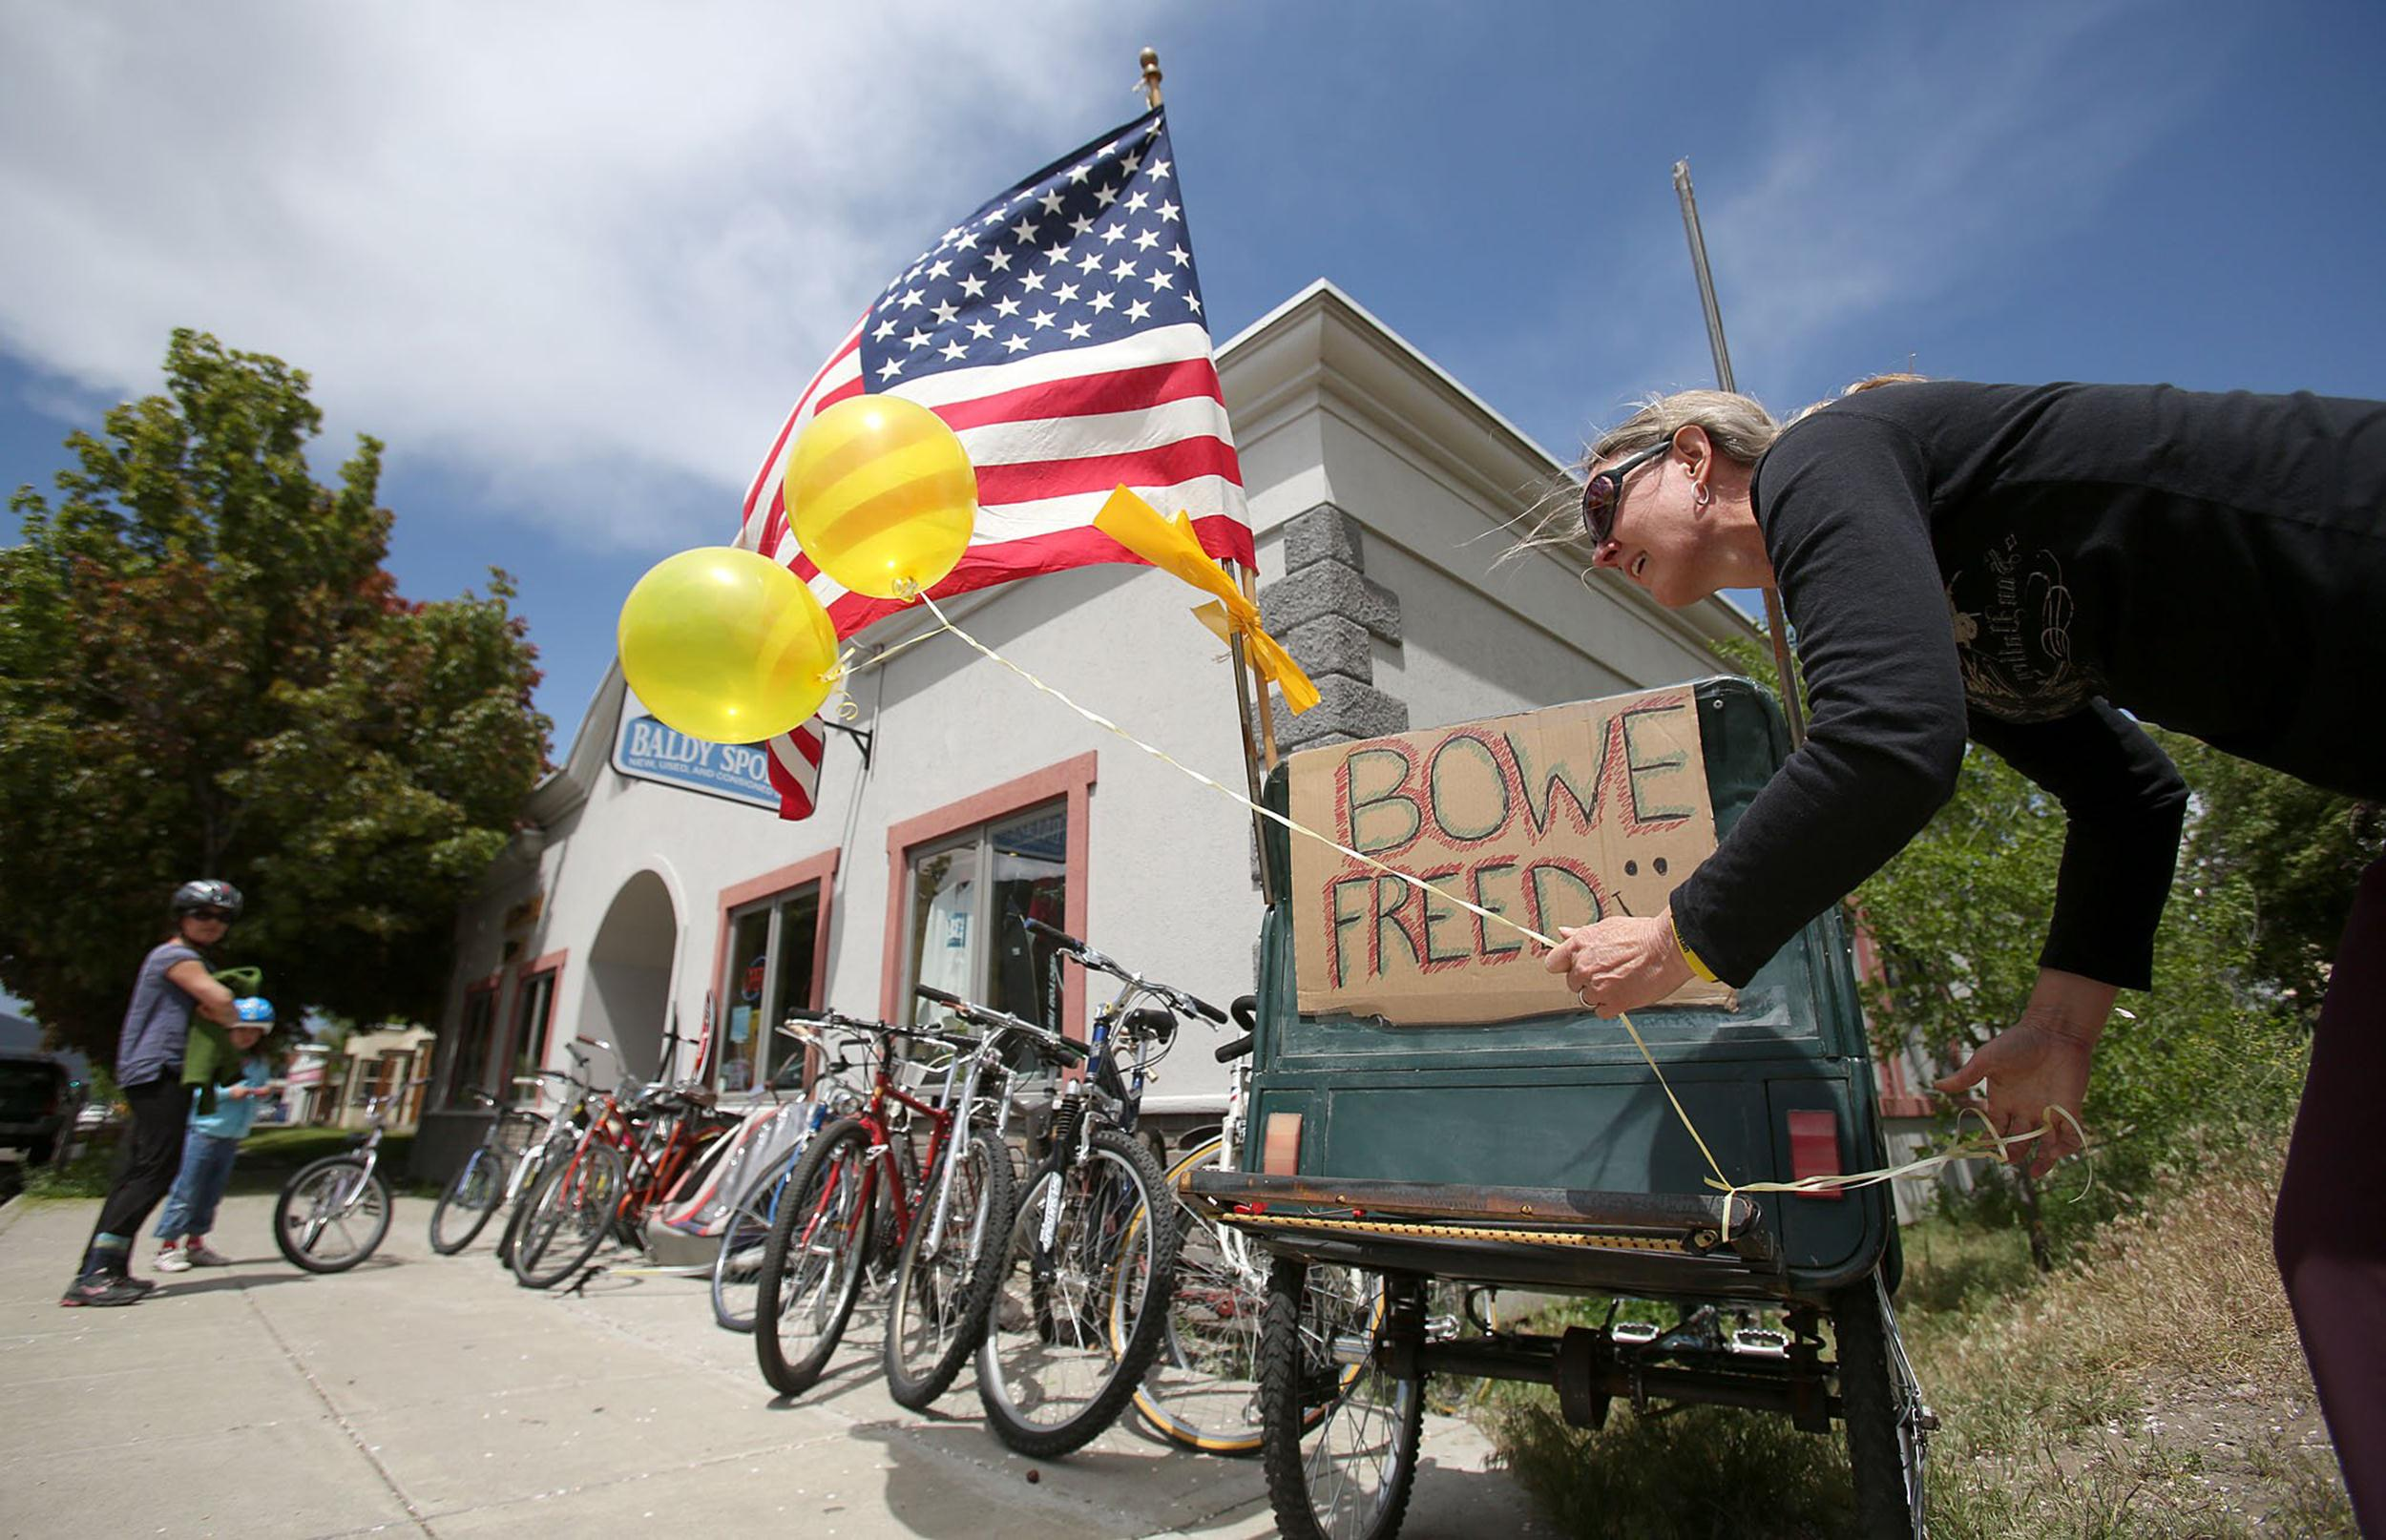 Image: Sondra Van Ert, co-owner of Baldy Sports, ties balloons to a bike trailer in front of her store to celebrate the news of U.S. Army Sgt. Bowe Bergdahl's release